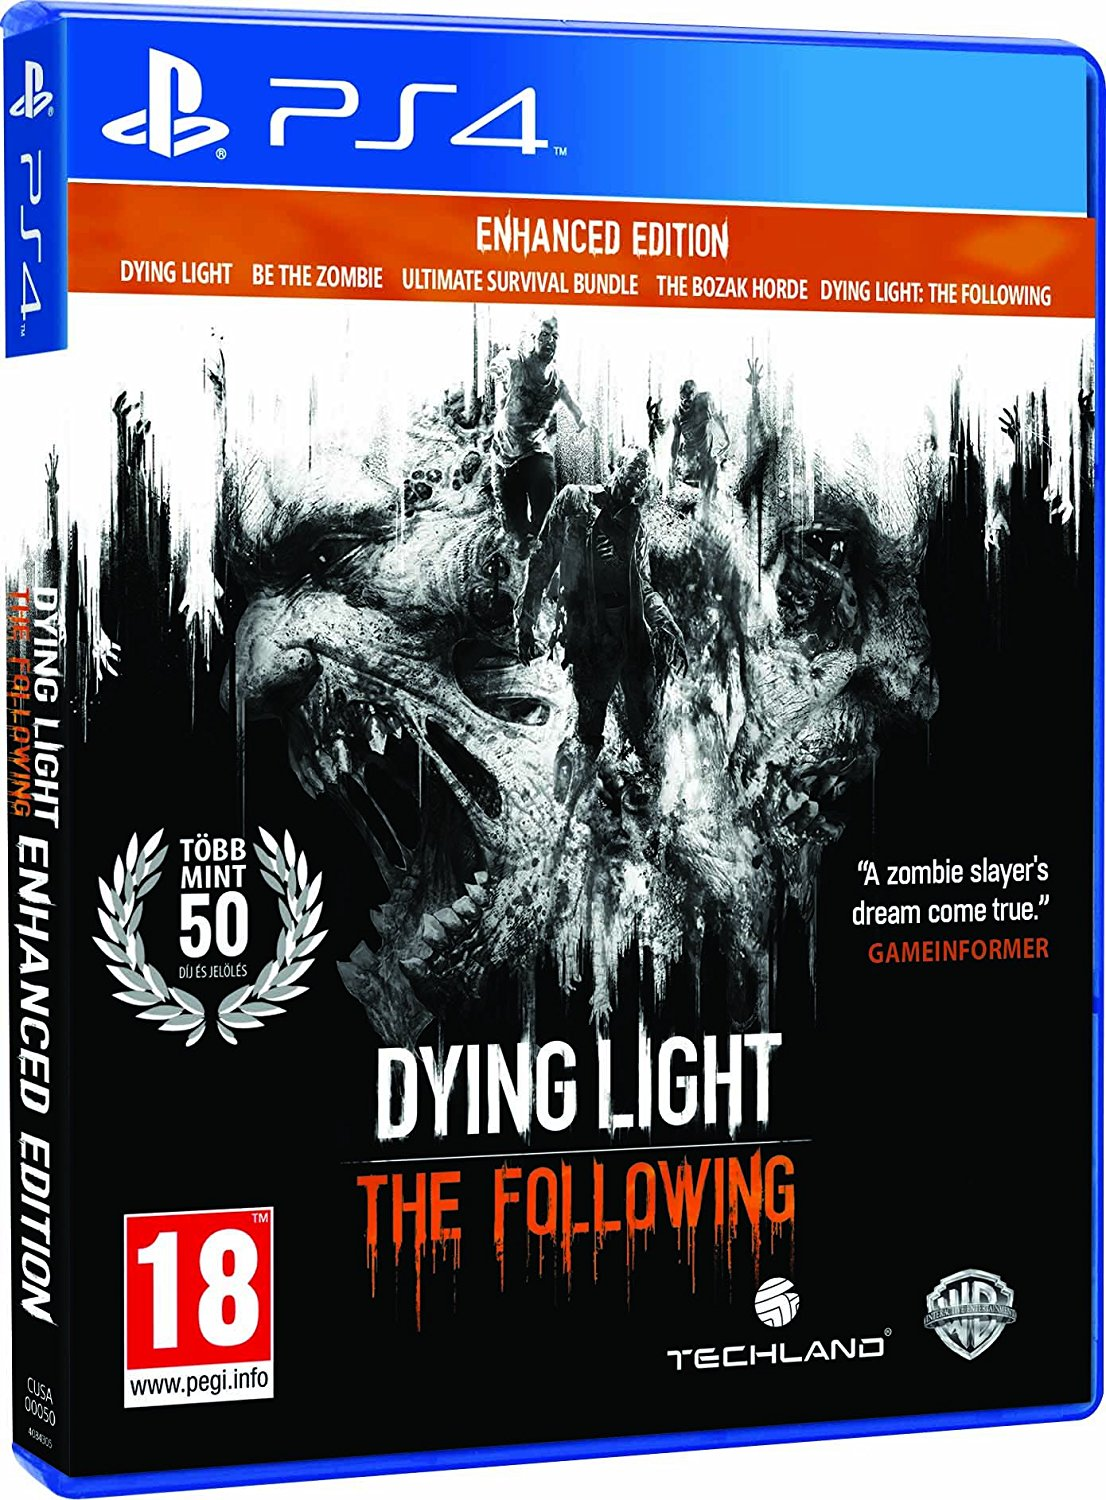 Dying Light: The Following - Enhanced Edition - PS4 - Video Games by Warner Bros. Interactive Entertainment The Chelsea Gamer